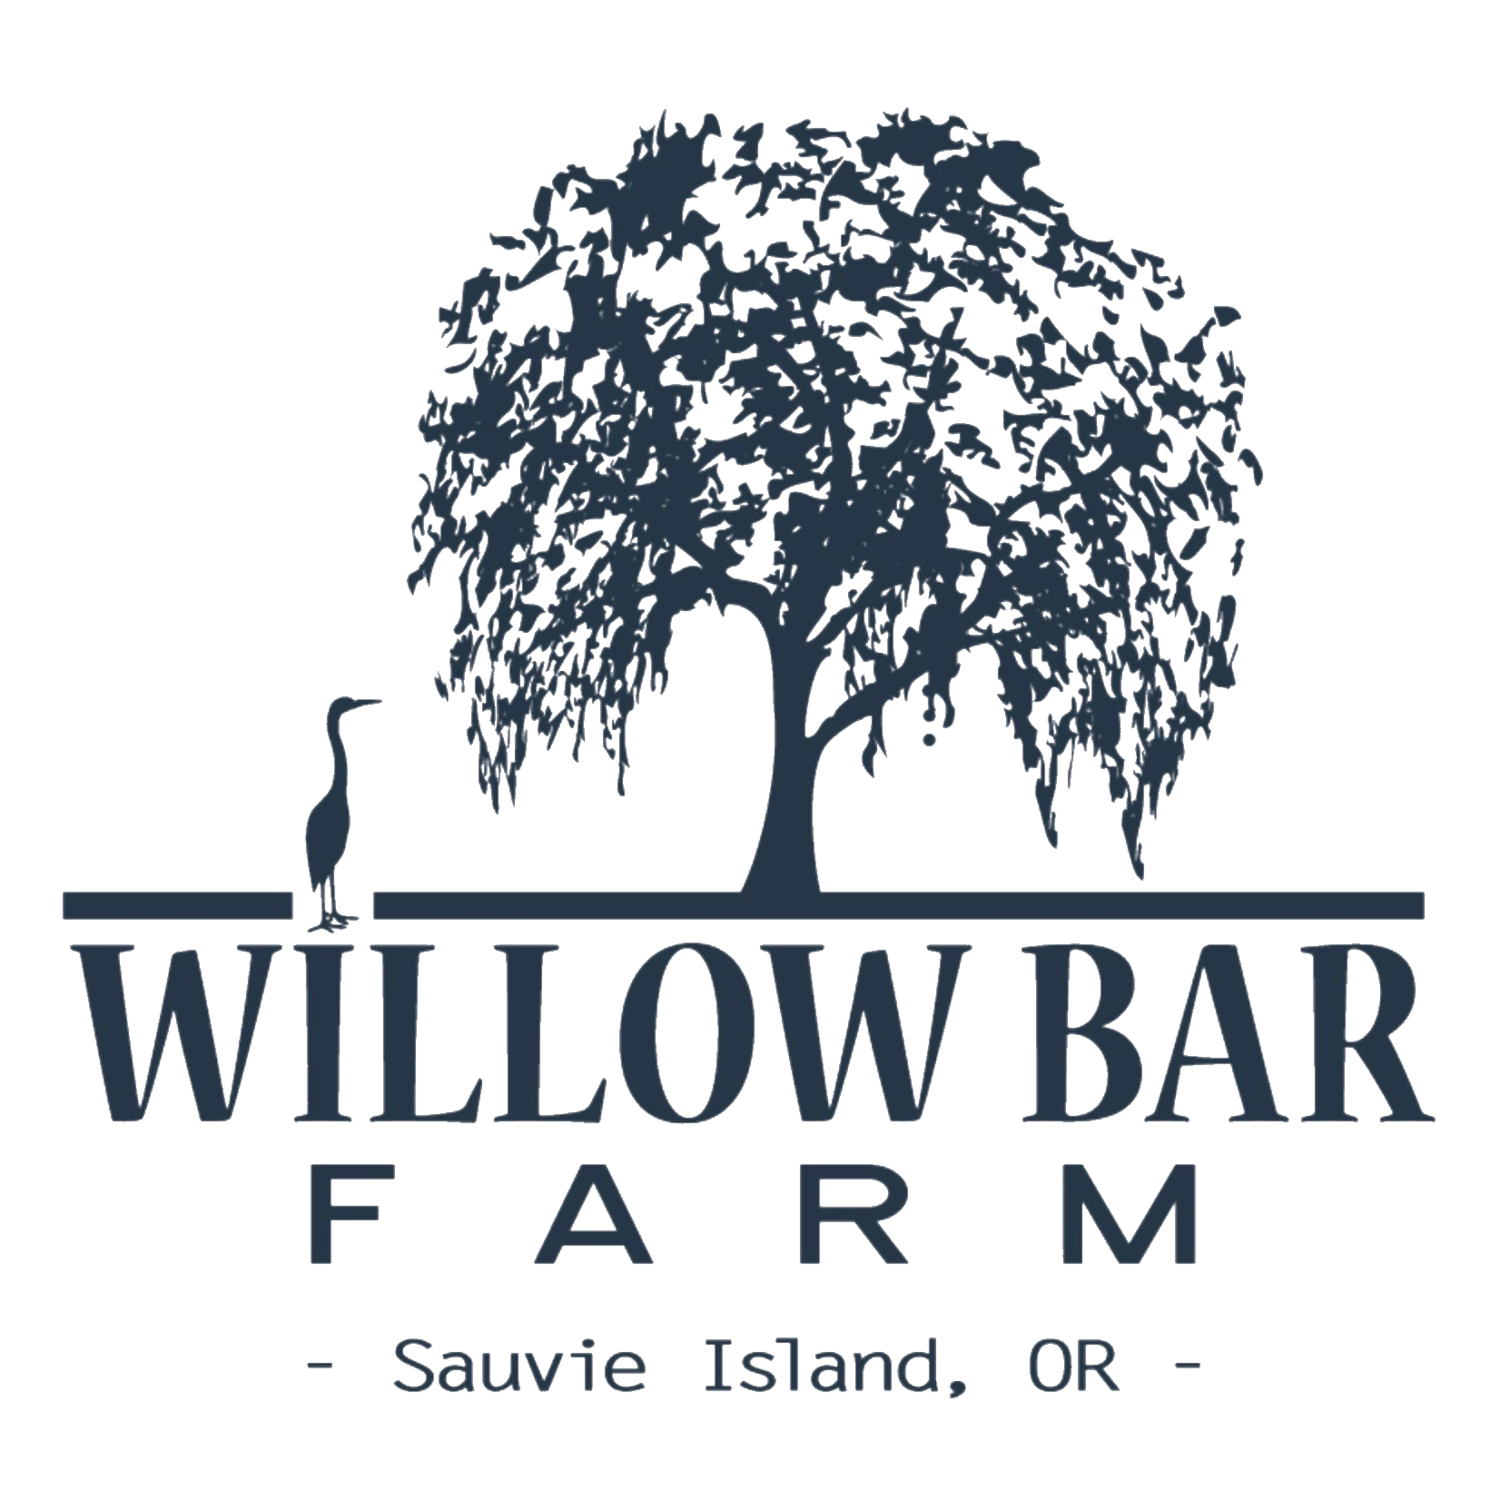 Willow Bar Farm